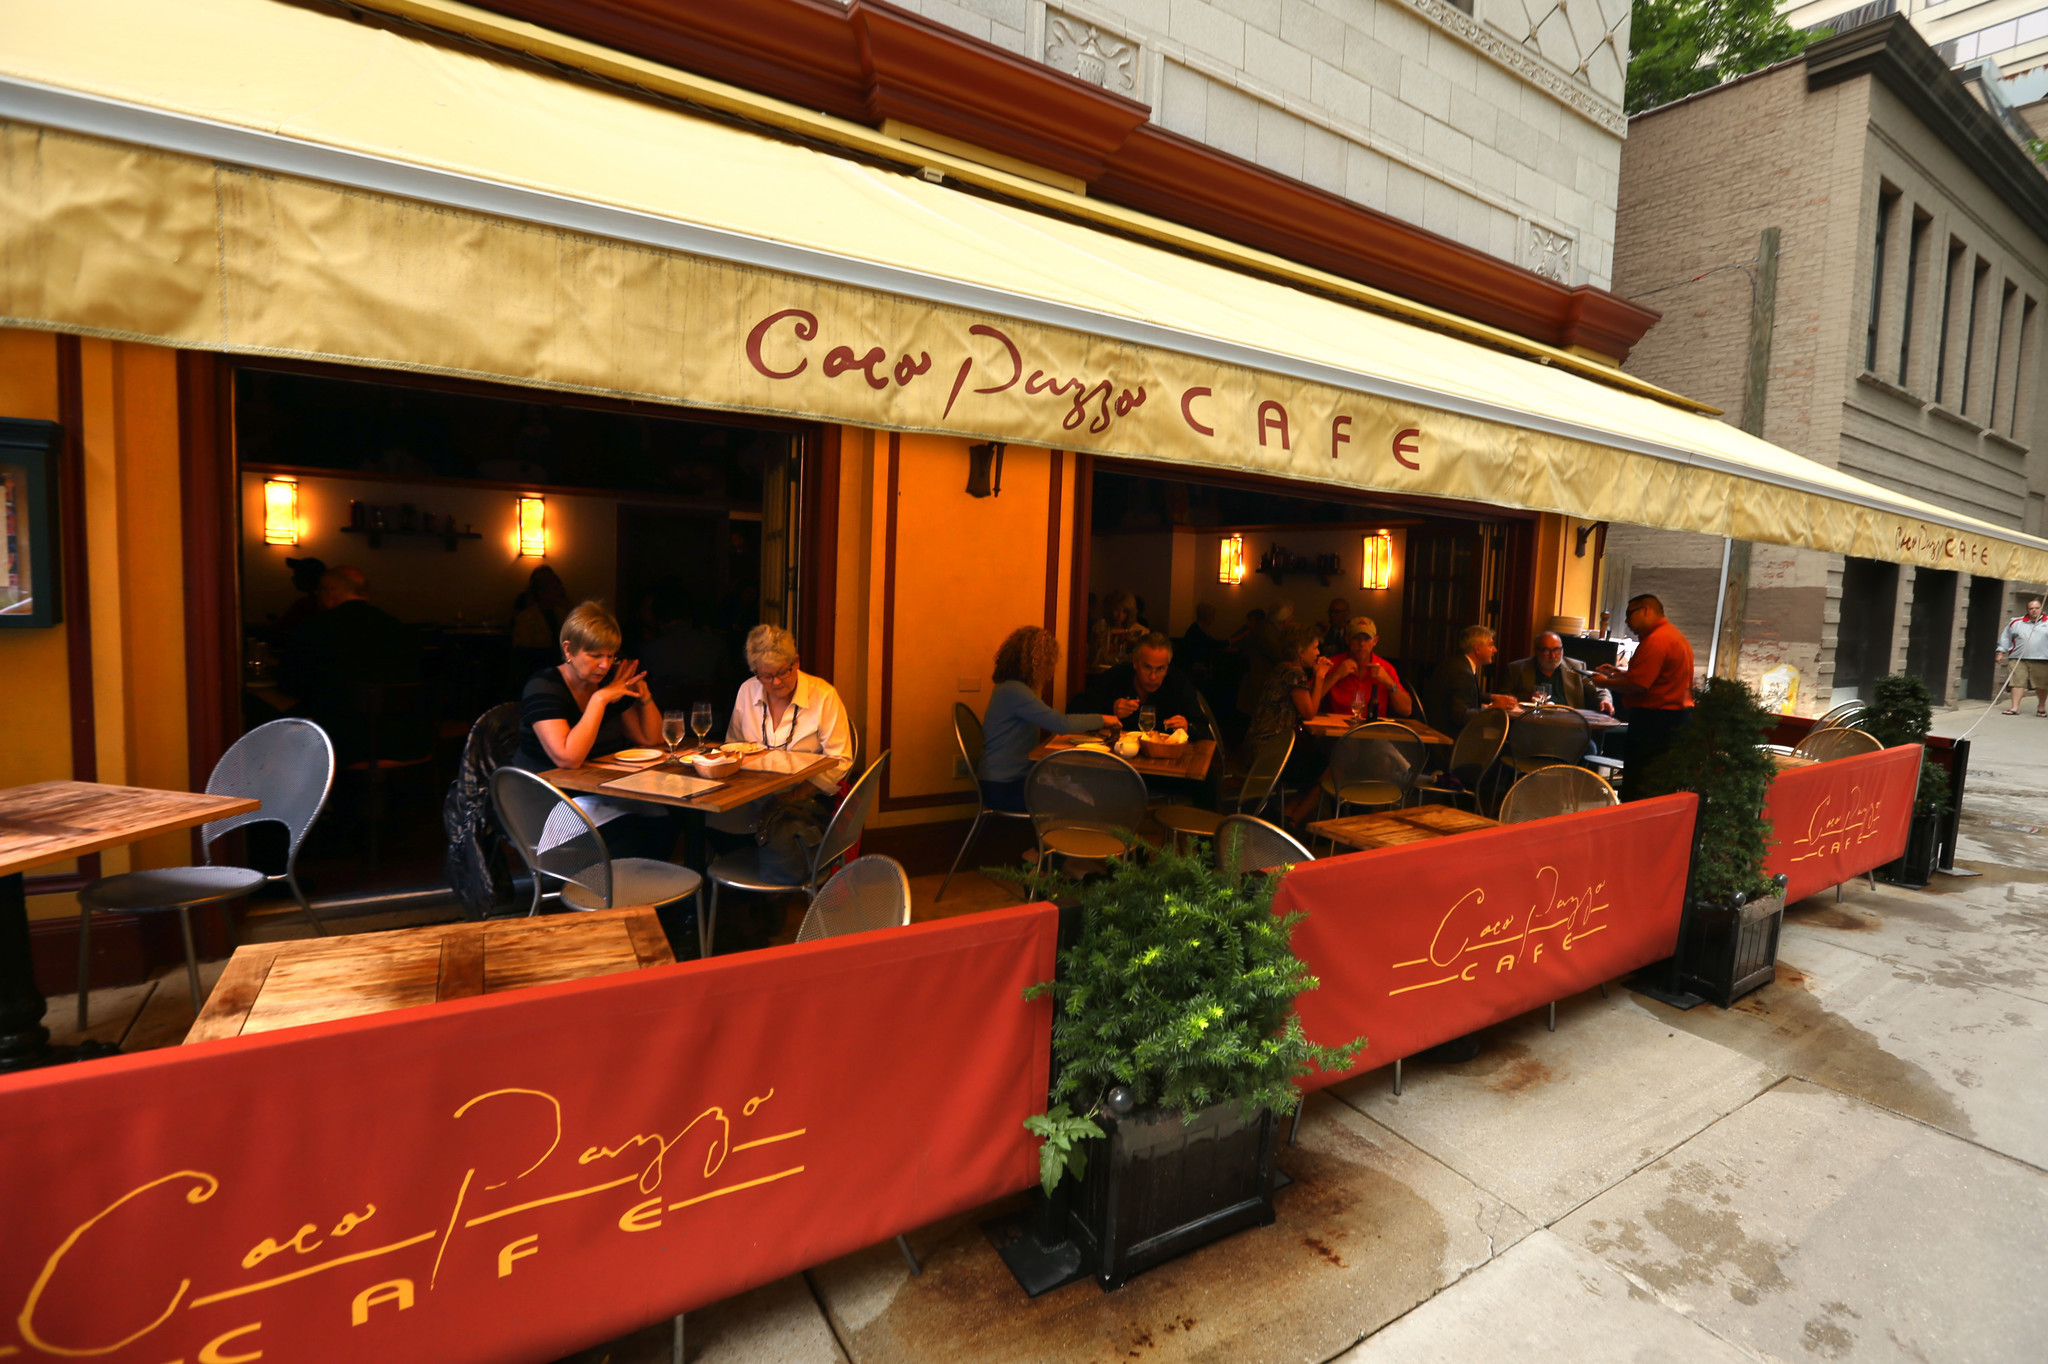 Coco Pazzo Cafe To Move After 20 Years On St Clair Street Chicago Tribune